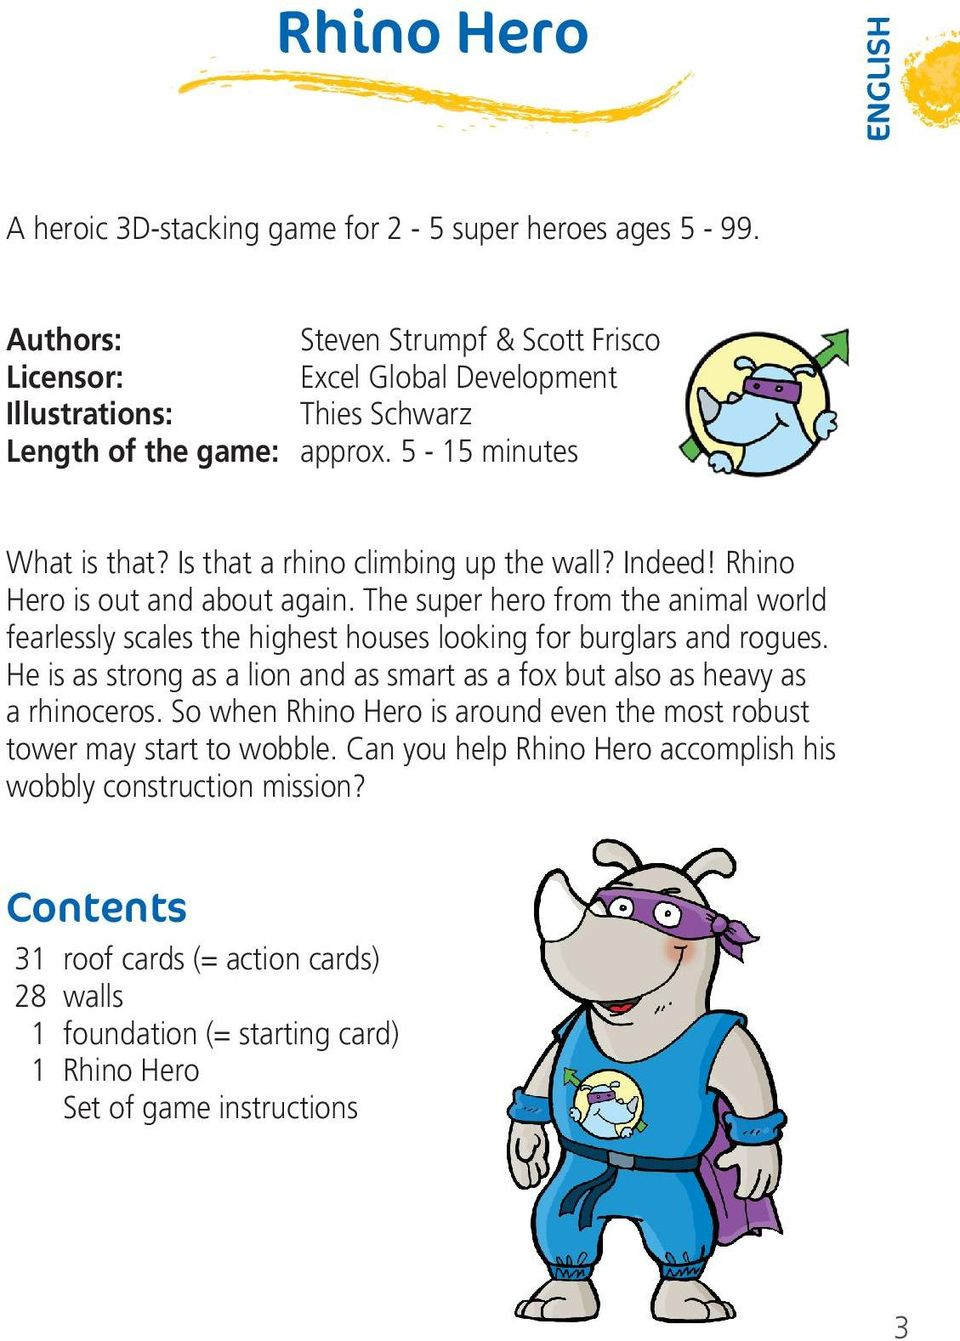 Is that a rhino climbing up the wall? Indeed! Rhino Hero is out and about again. The super hero from the animal world fearlessly scales the highest houses looking for burglars and rogues.